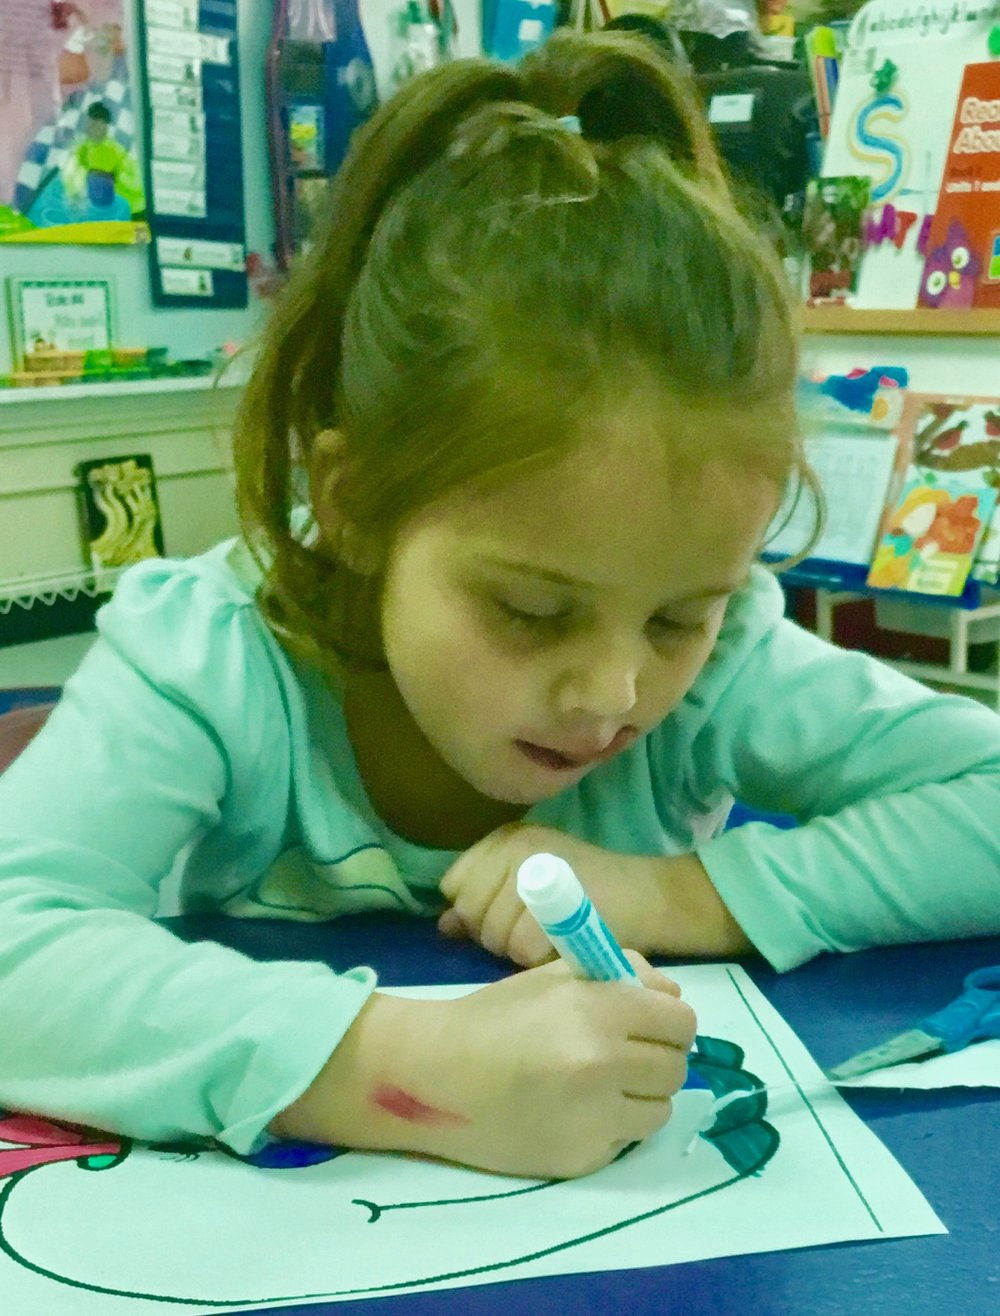 A budding artist works hard with donated supplies.